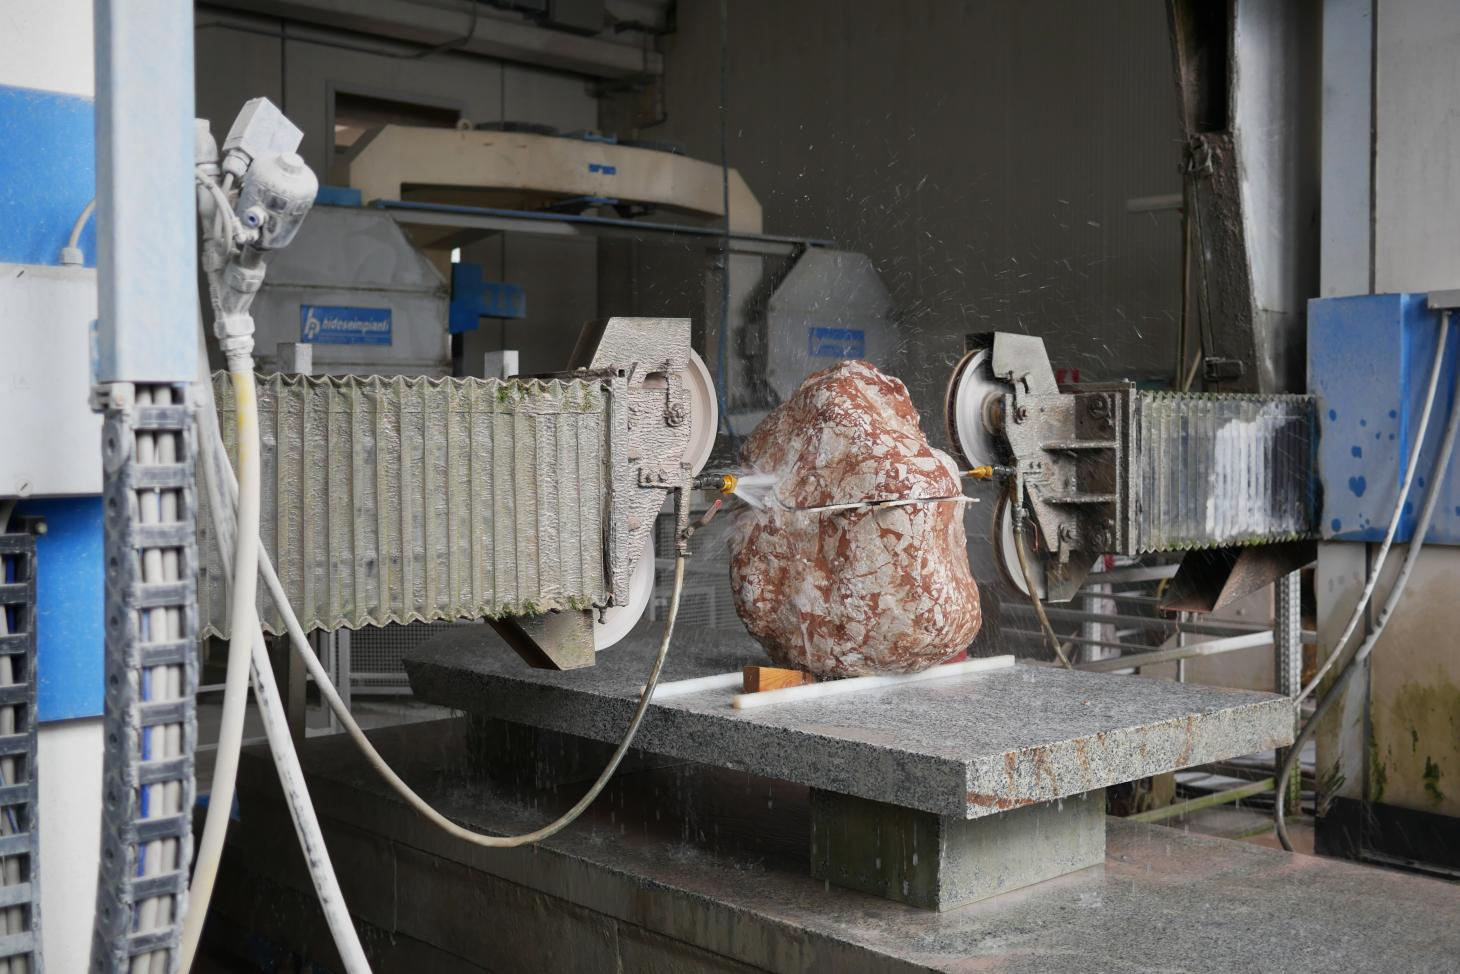 Large red stone with white speckles being cut by a machine to become a chair